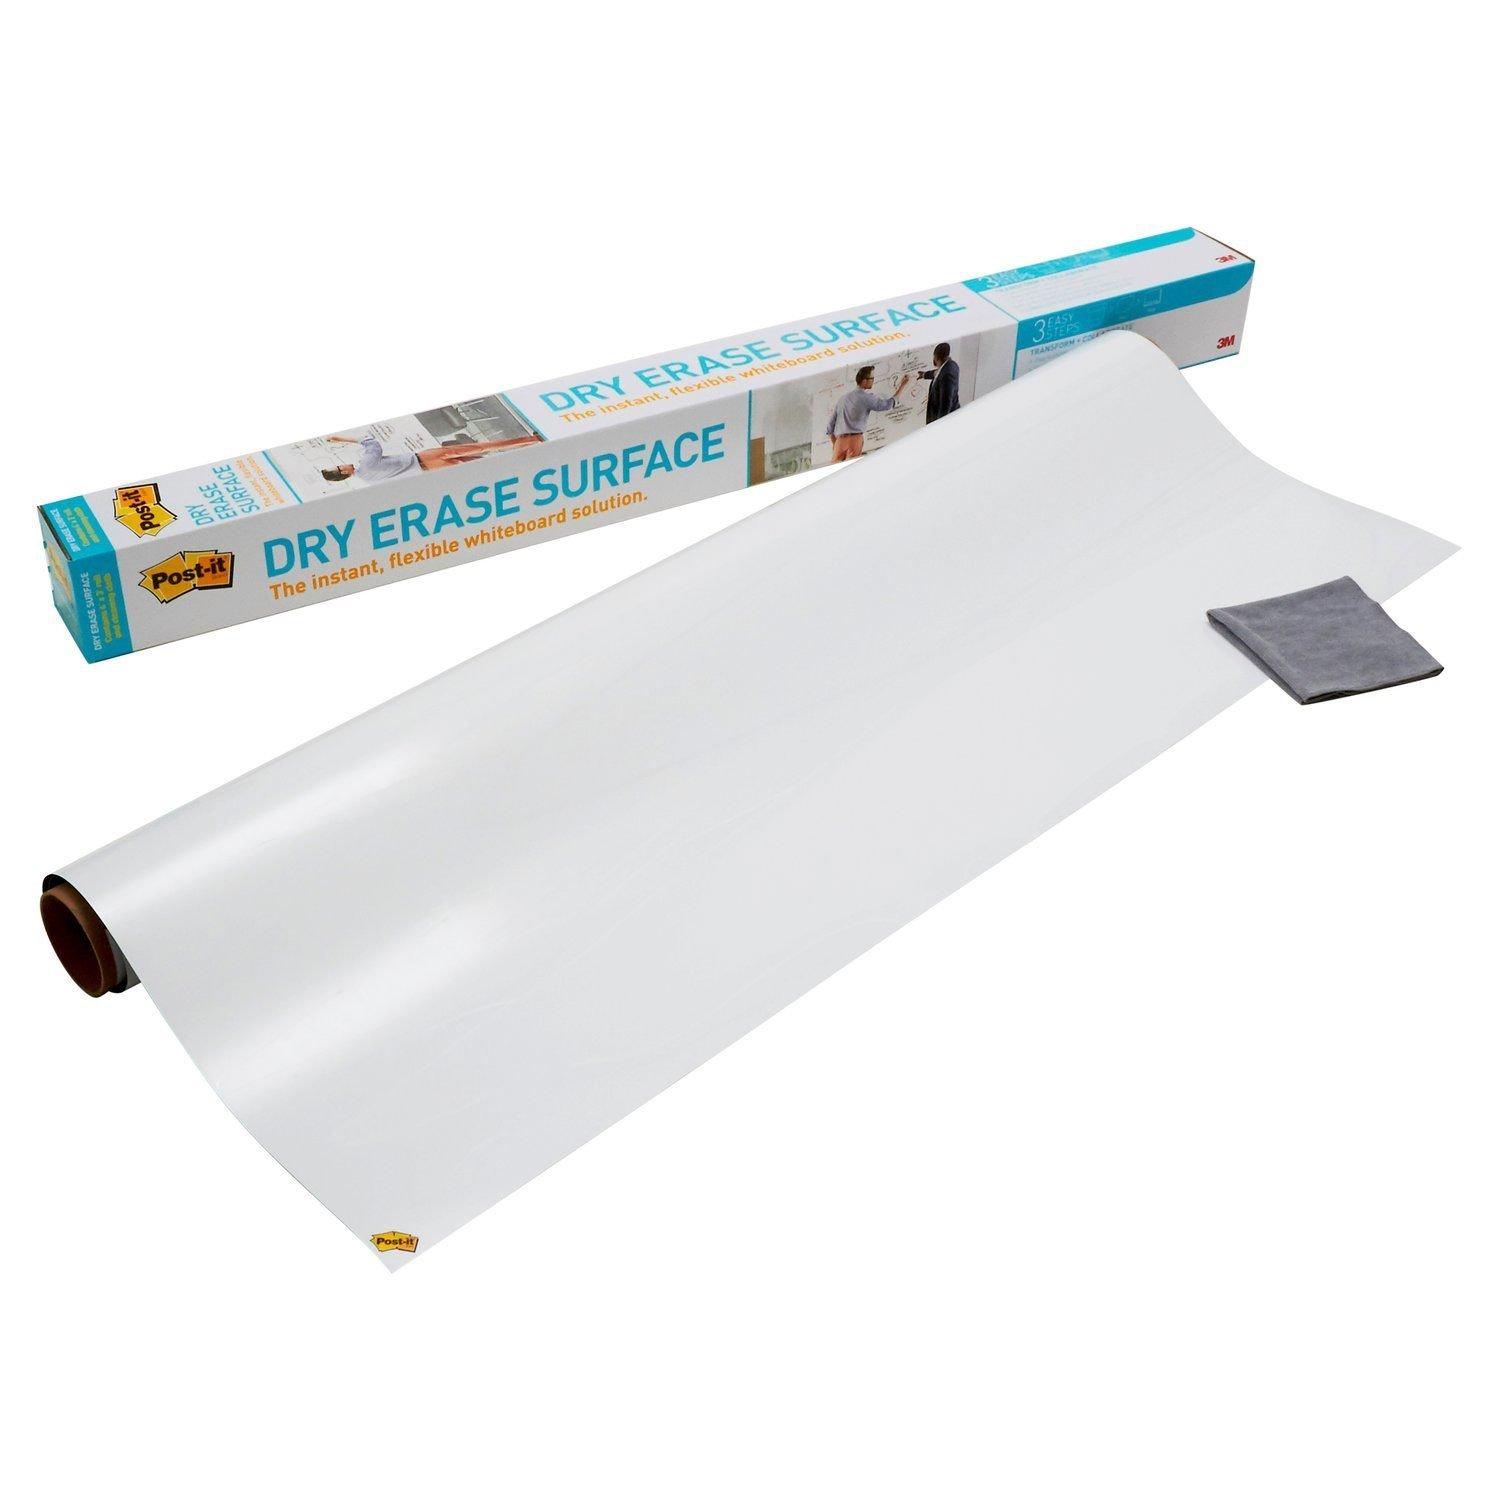 Amazon Com Post It Dry Erase Surface 4 Ft X 3 Ft Great For Tables Desks And Other Surfaces Discontinued By Manufacturer Office Products